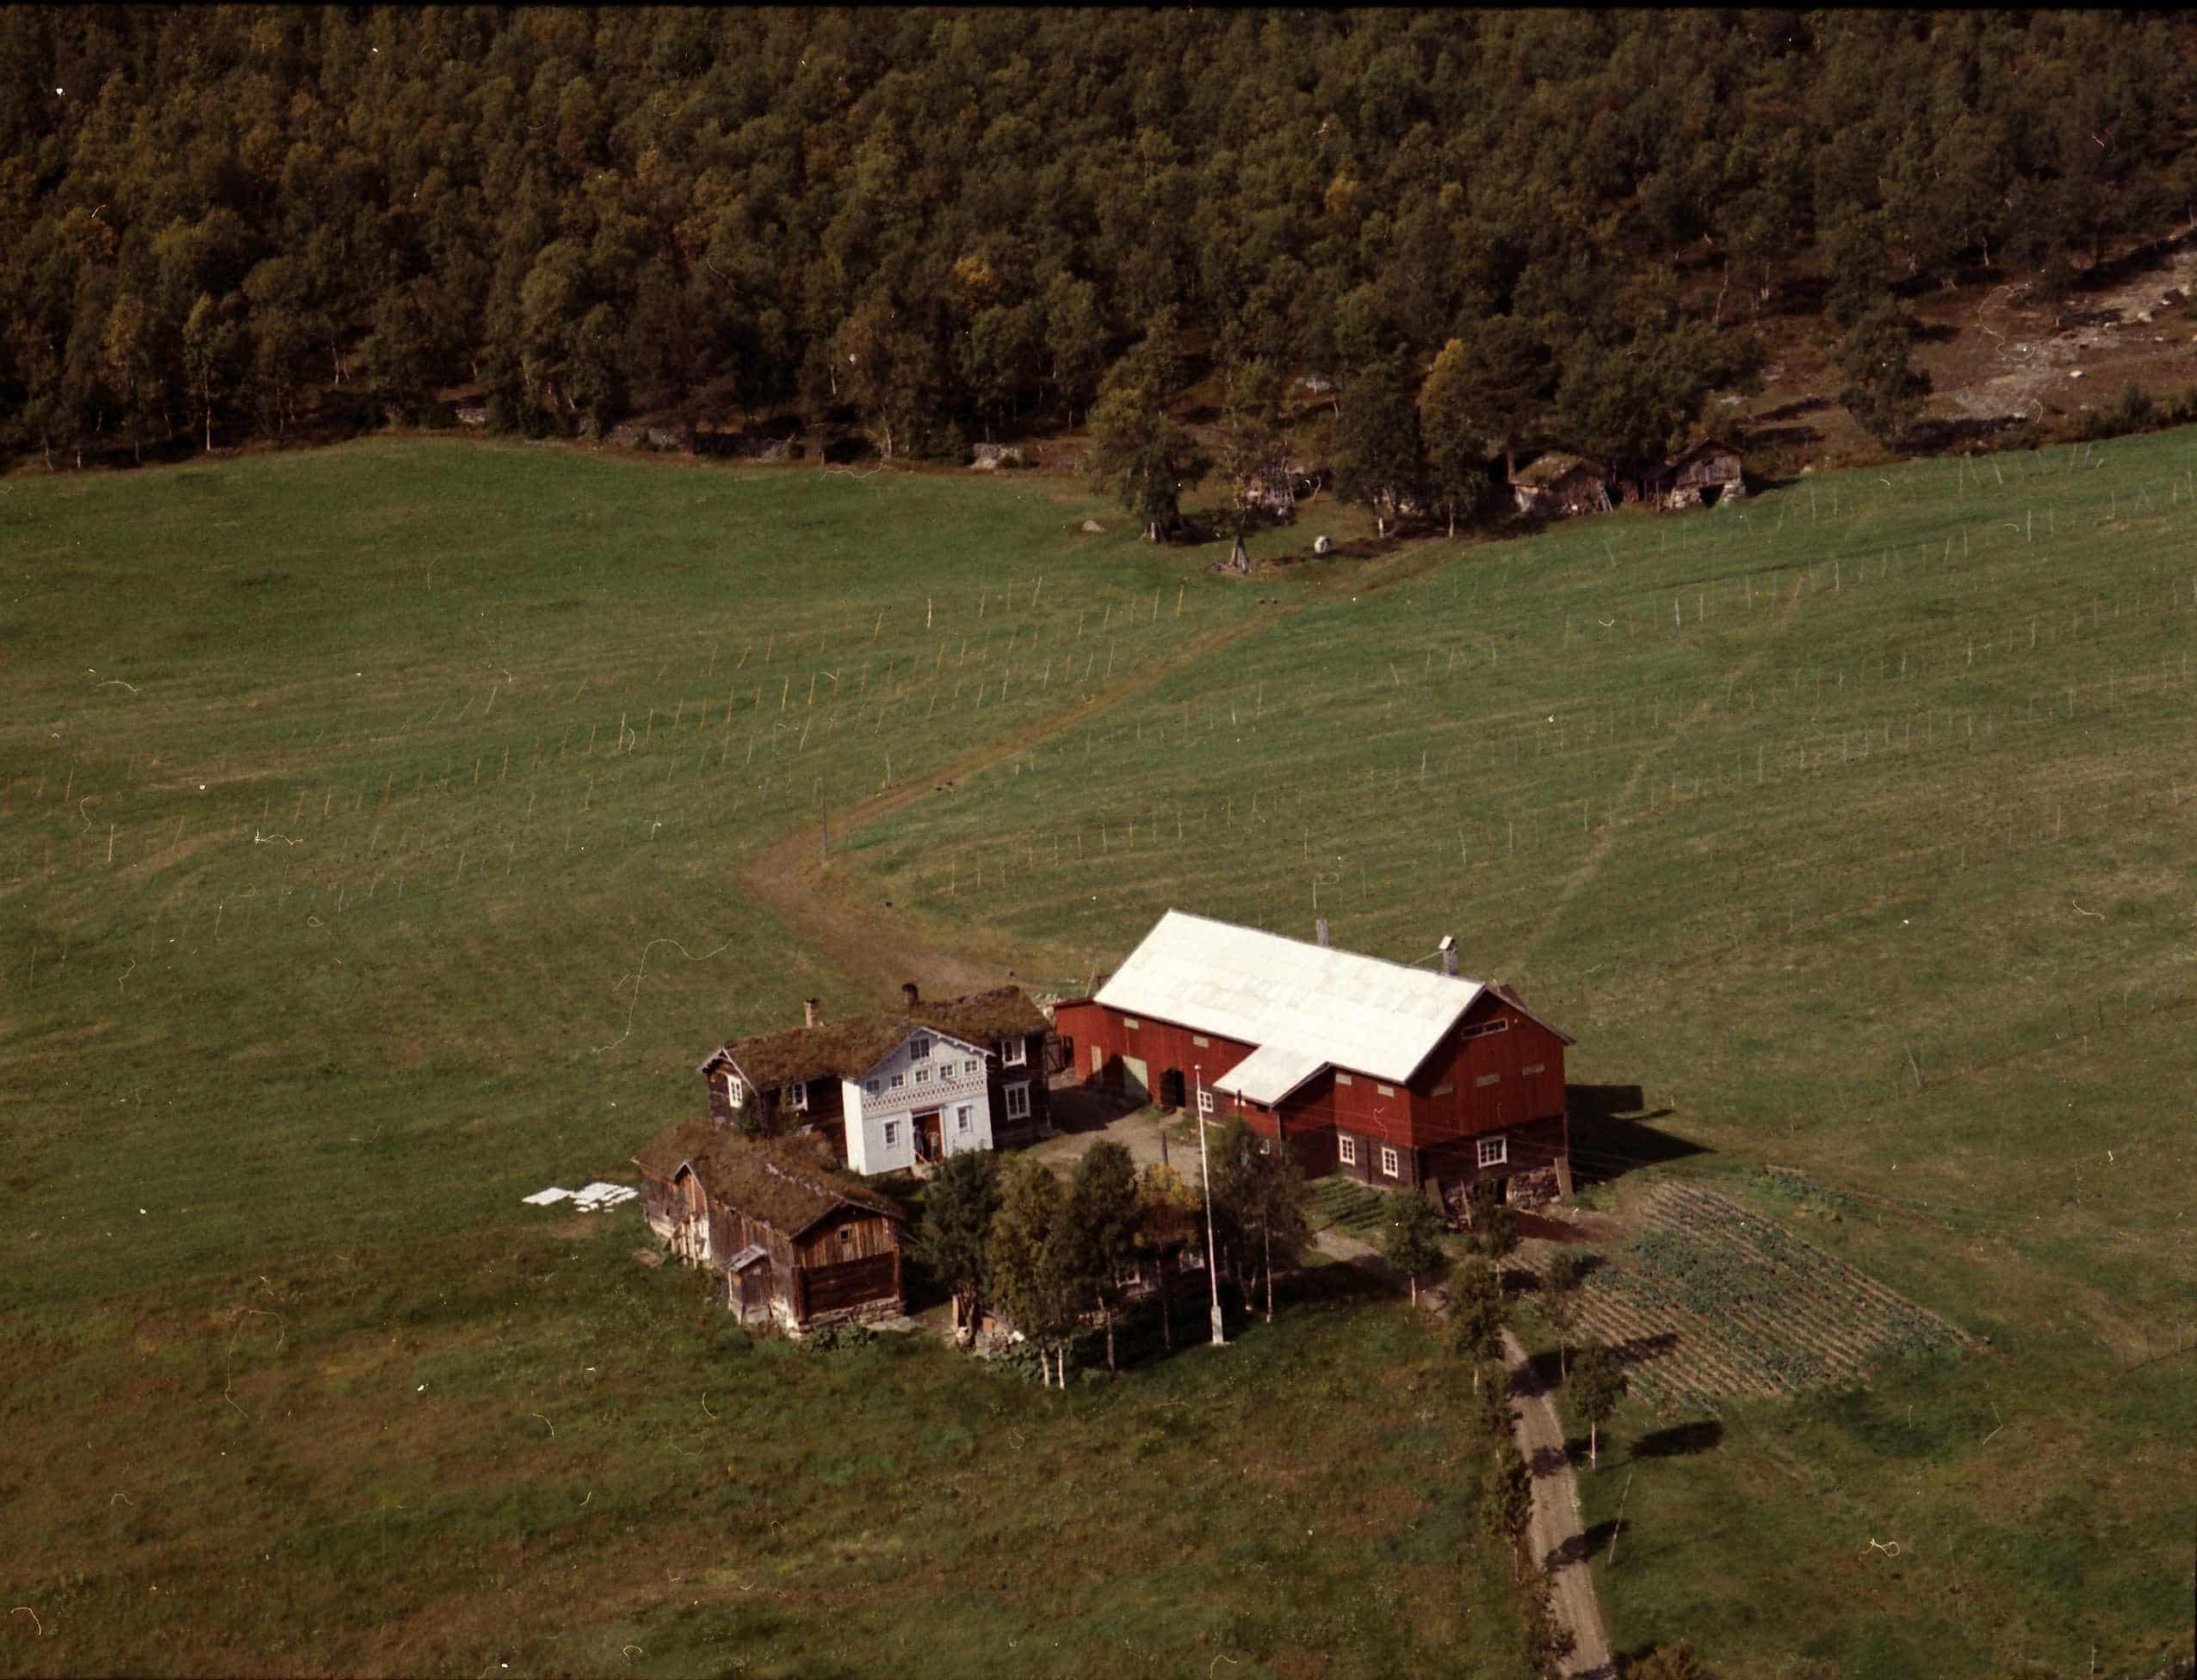 Nyås farm, Os, Hedmark in 1961. | Photo: Widerøes Flyveselskap AS - digitaltmuseum.no MINØ.014133 - Public domain.